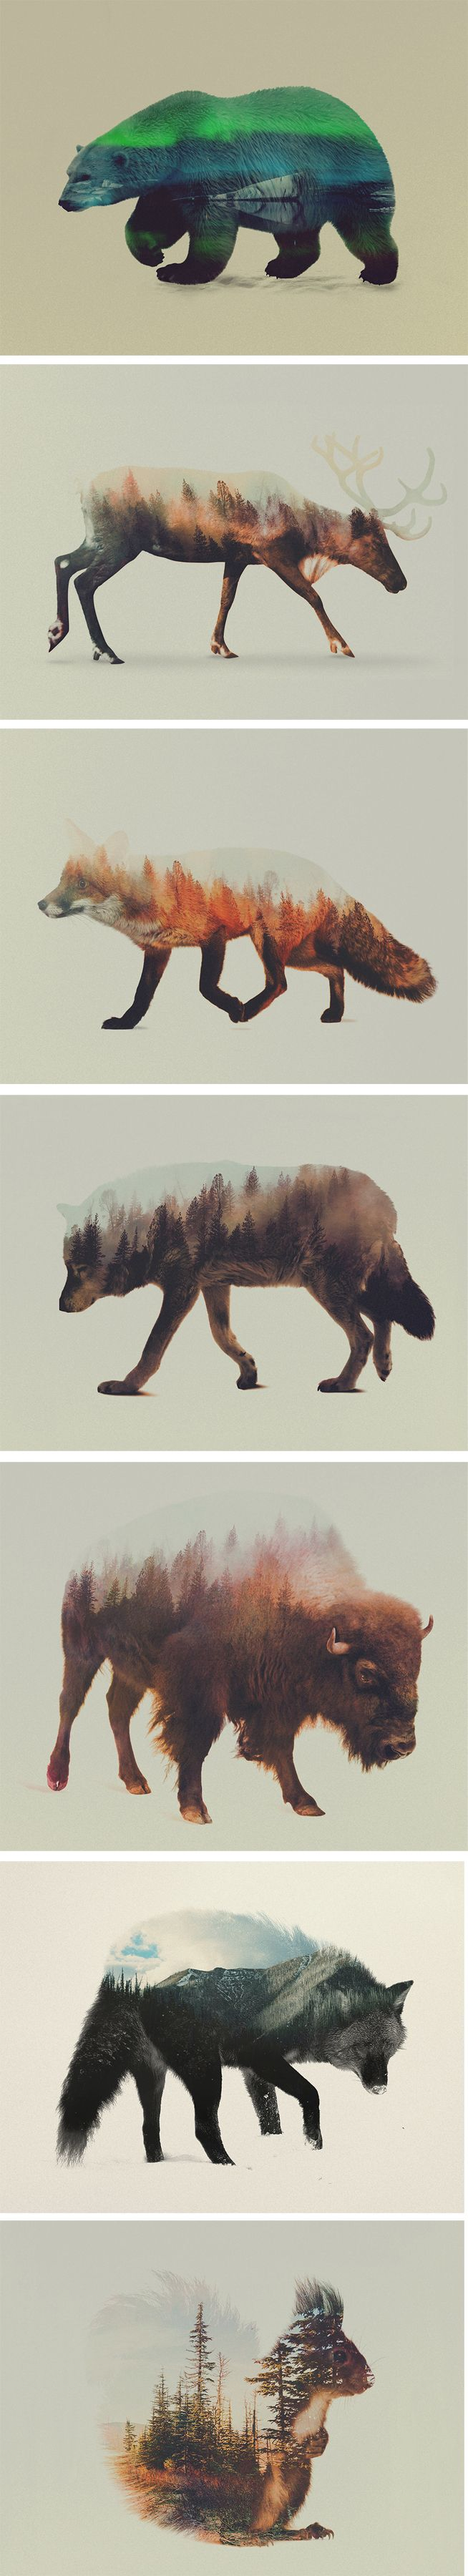 Norwegian visual artist Andreas Lie merges verdant landscapes and photographs of animals to creates subtle